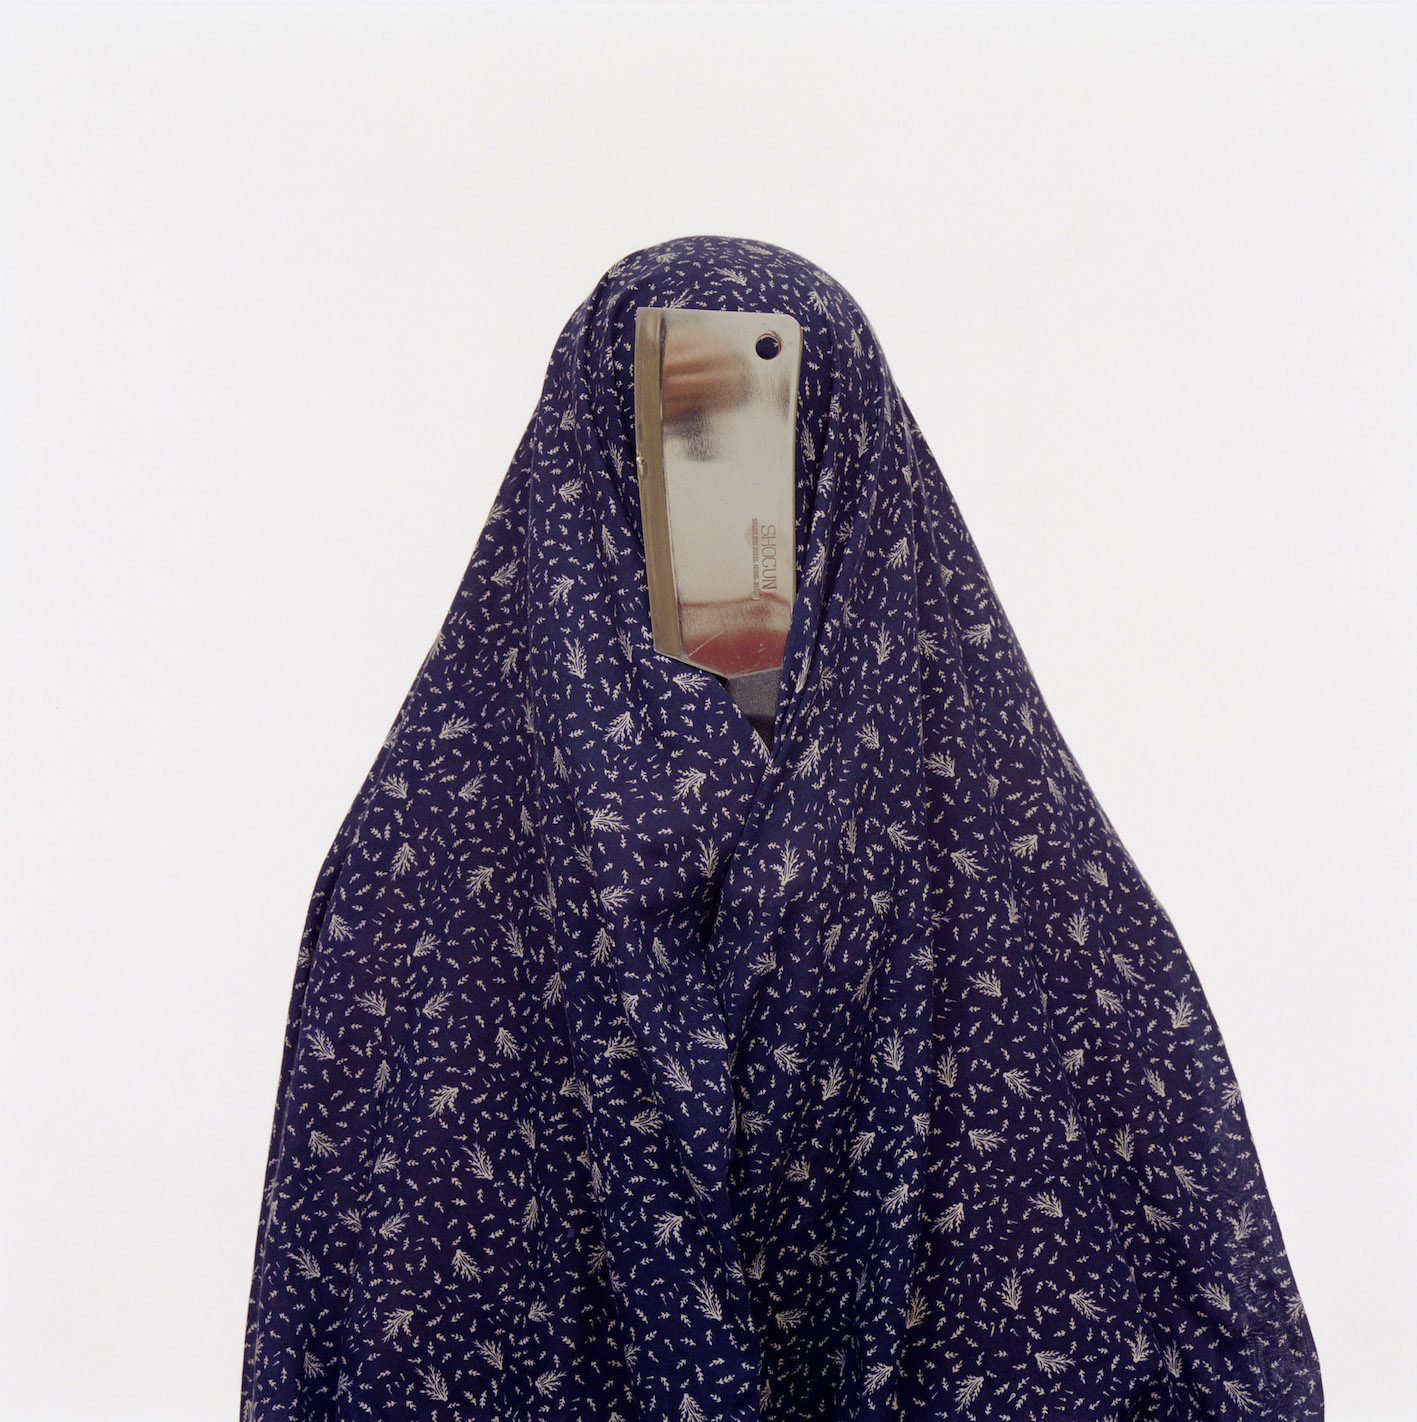 Shadi Ghadirian, Like Everyday #7, 2002.